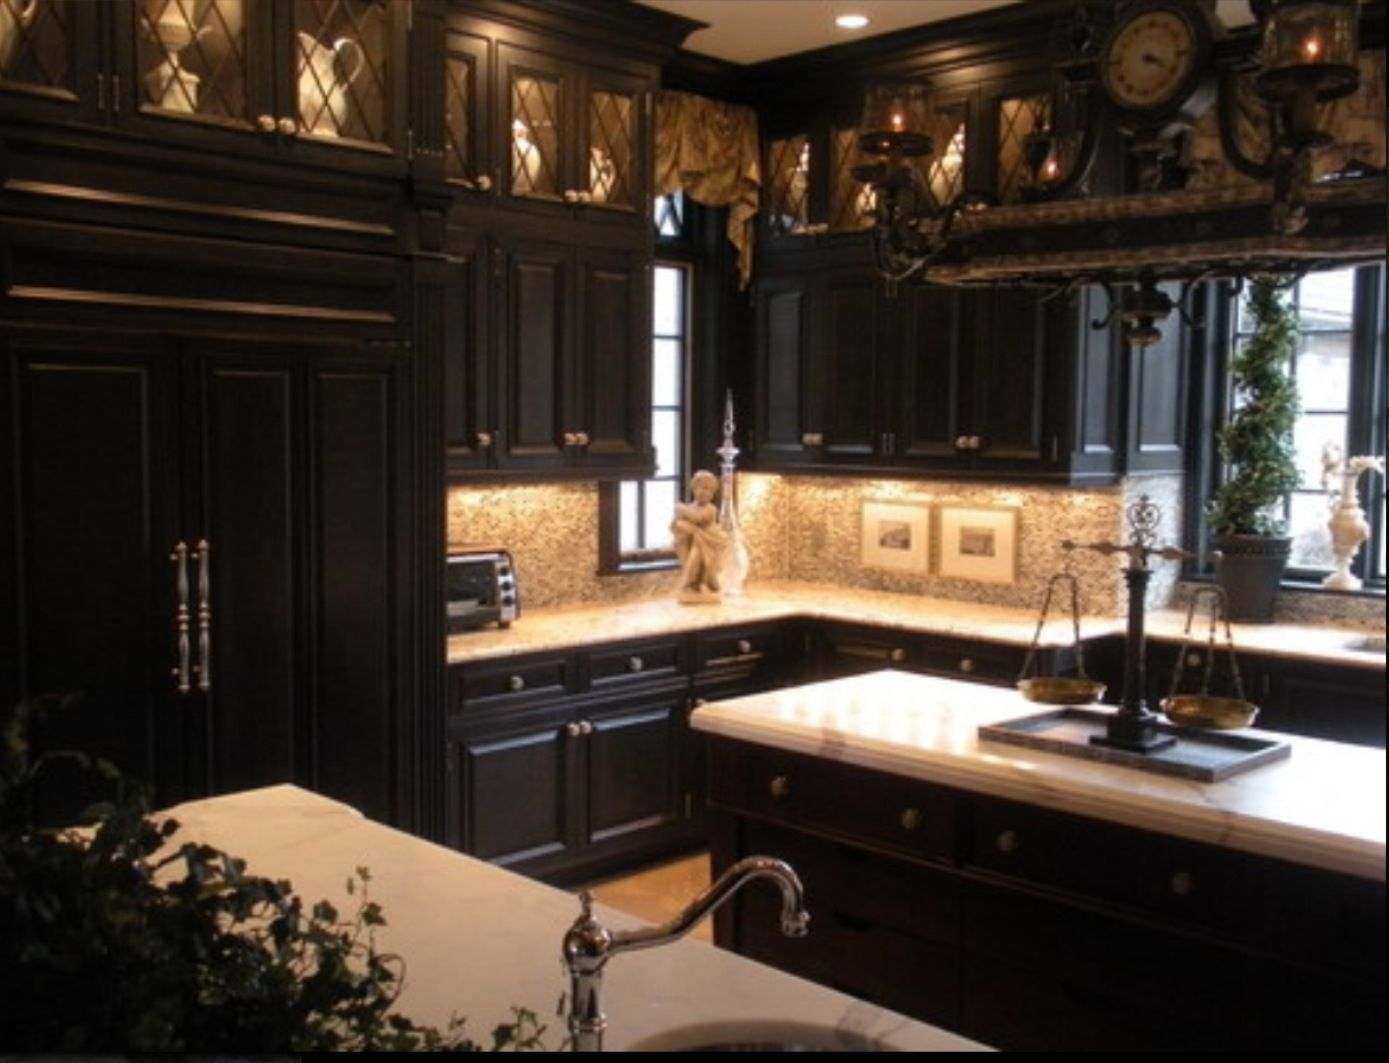 Black gothic kitchen. & Favorite Colored Kitchen Cabinets | Darque Decor: Dining \u0026 Kitchen ...